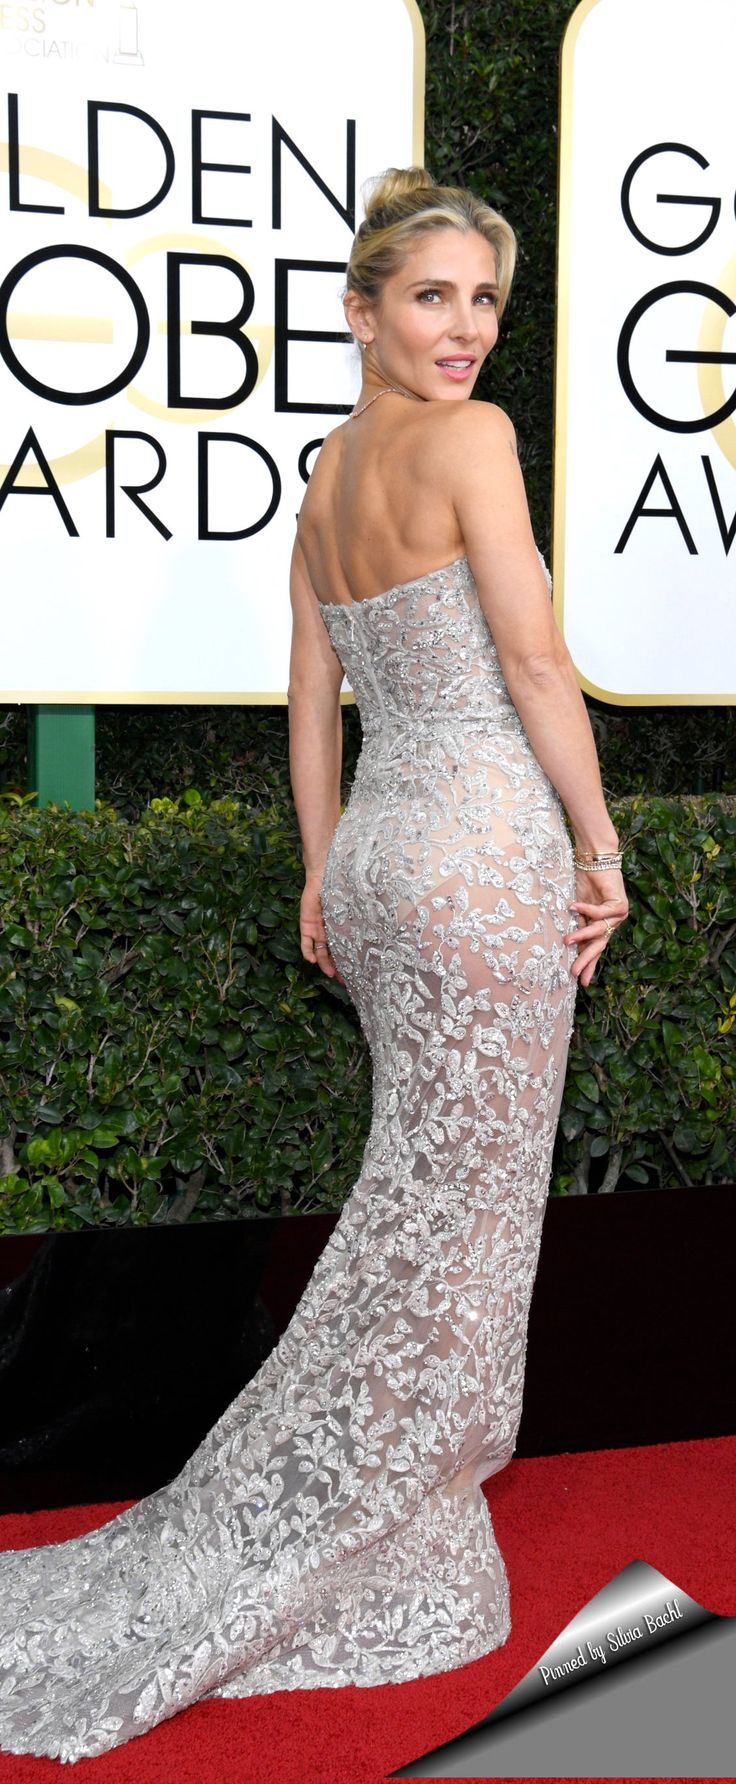 Elsa Pataky looks incredible in Zuhair Murad gown at the the 74th Golden Globe Awards Ceremony.